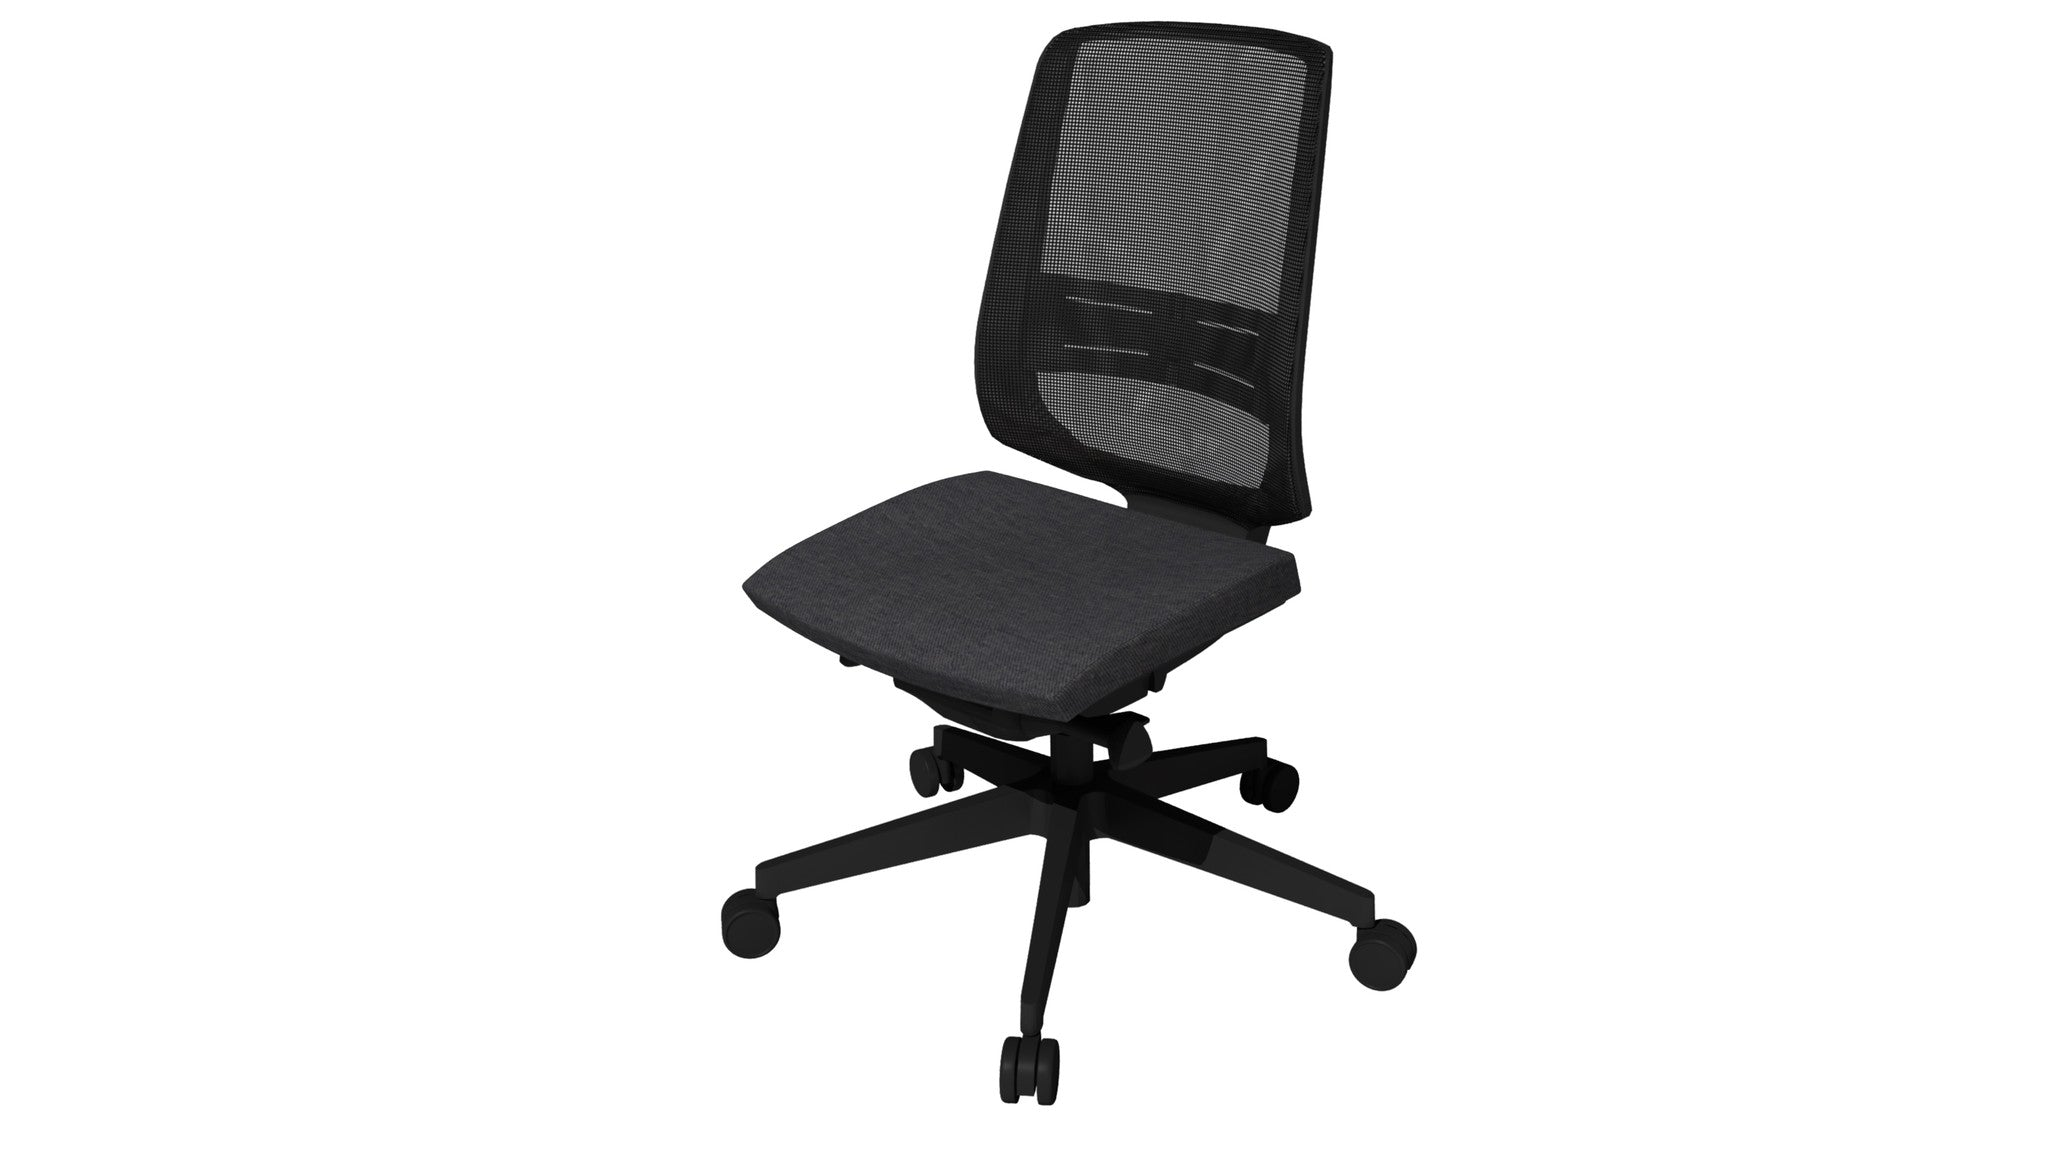 Rumas kontorstol office chair Fly pumpe - dark grey fabric (nx-14)